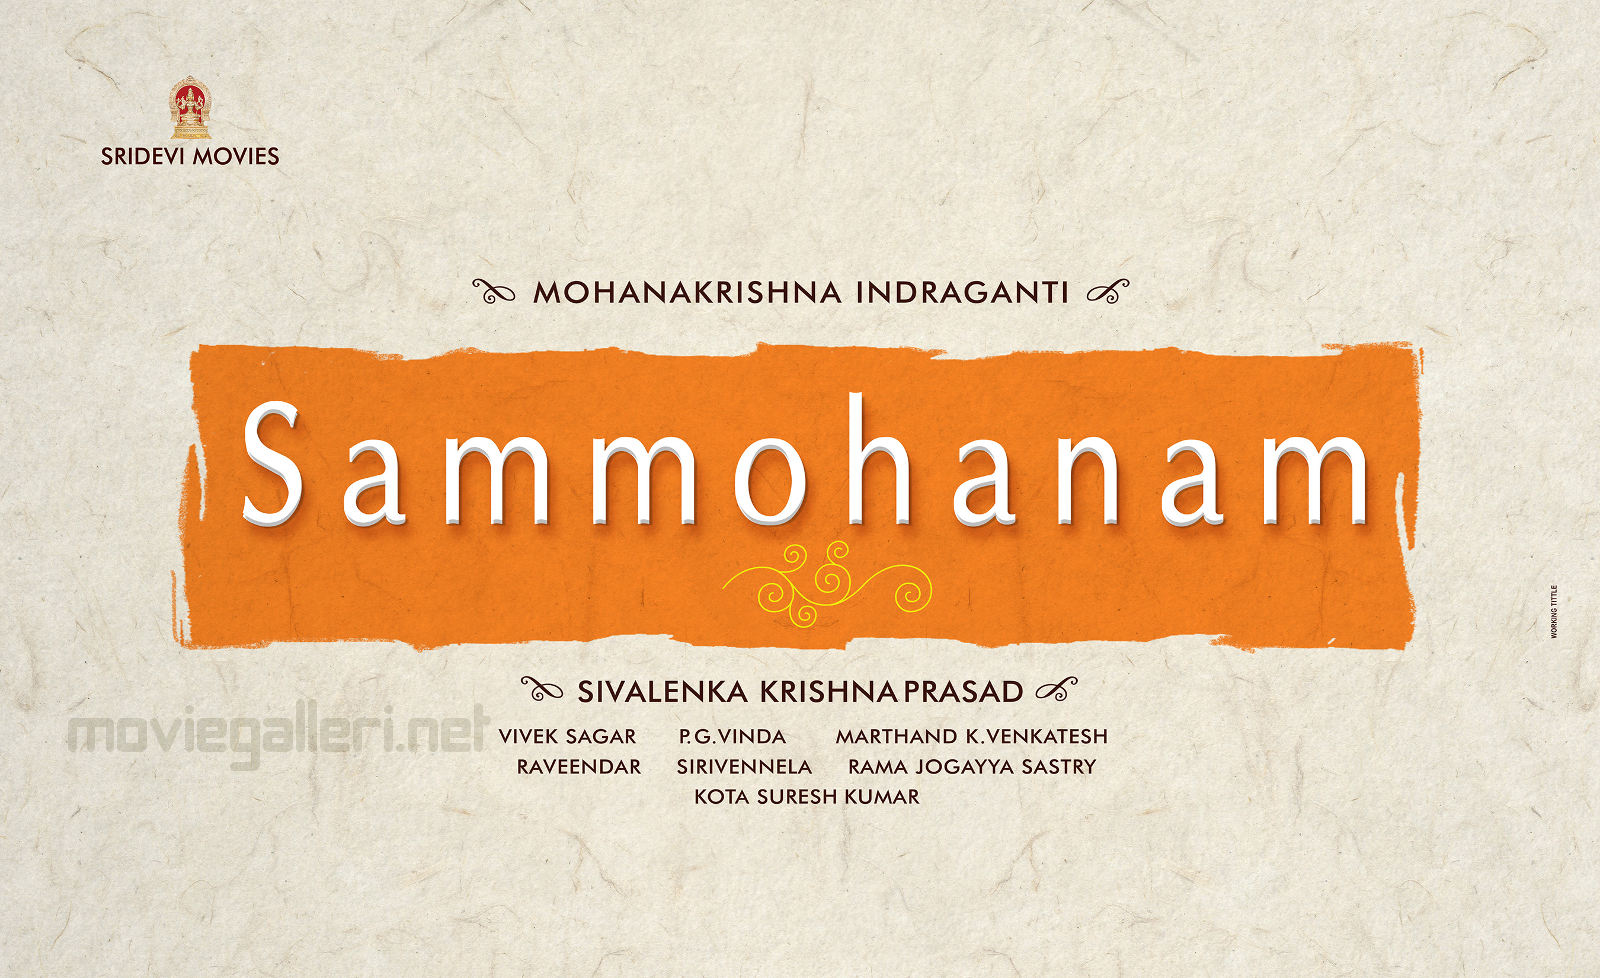 Sudheer Babu - Indraganti Mohan Krishna movie Sammohanam title announcement